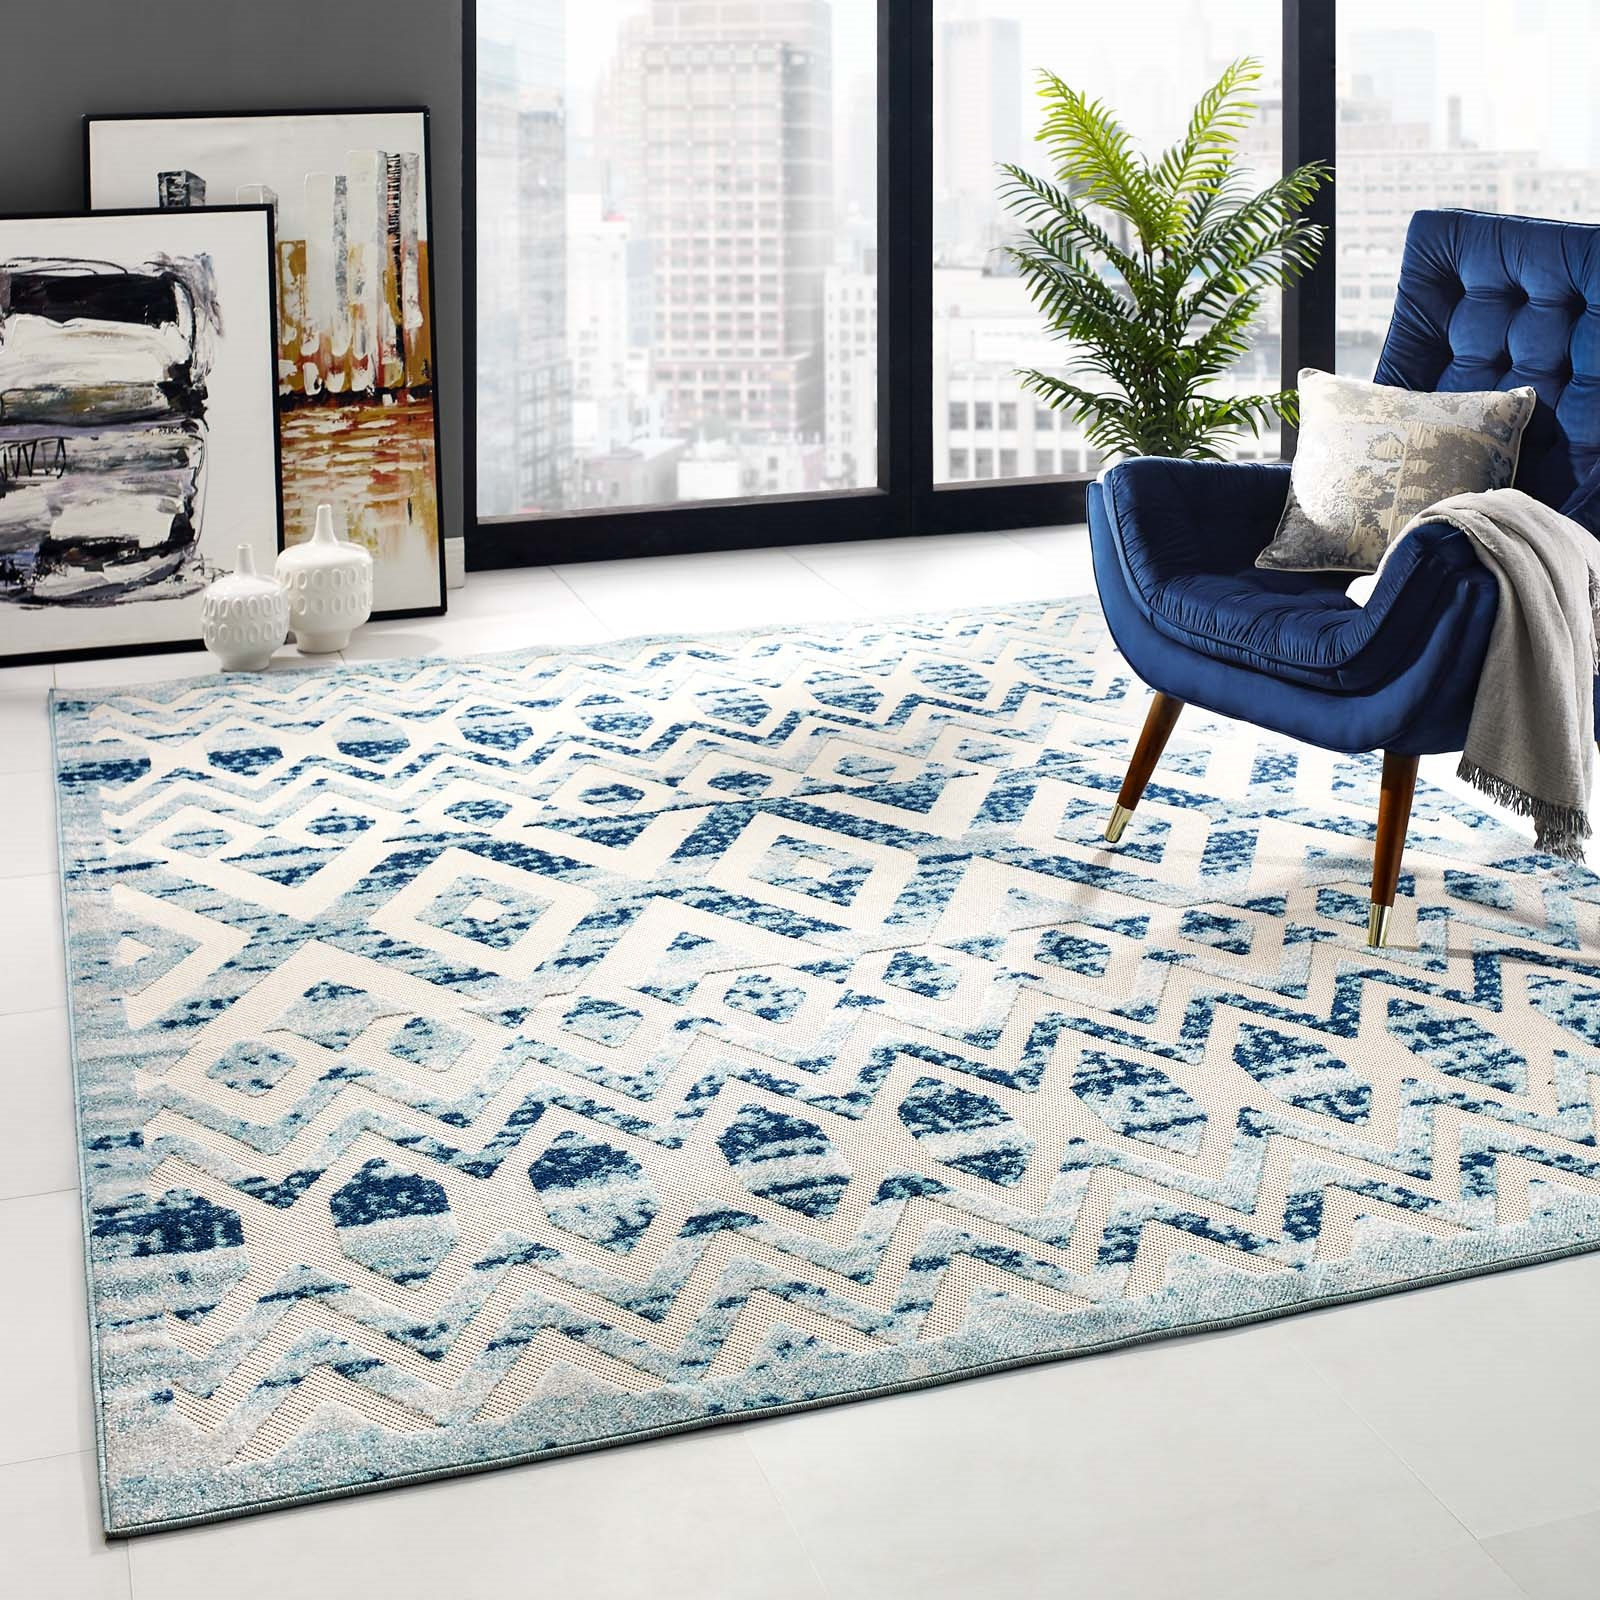 Reflect Tamako Diamond and Chevron Moroccan Trellis 8x10 Indoor / Outdoor Area Rug in Ivory and Blue